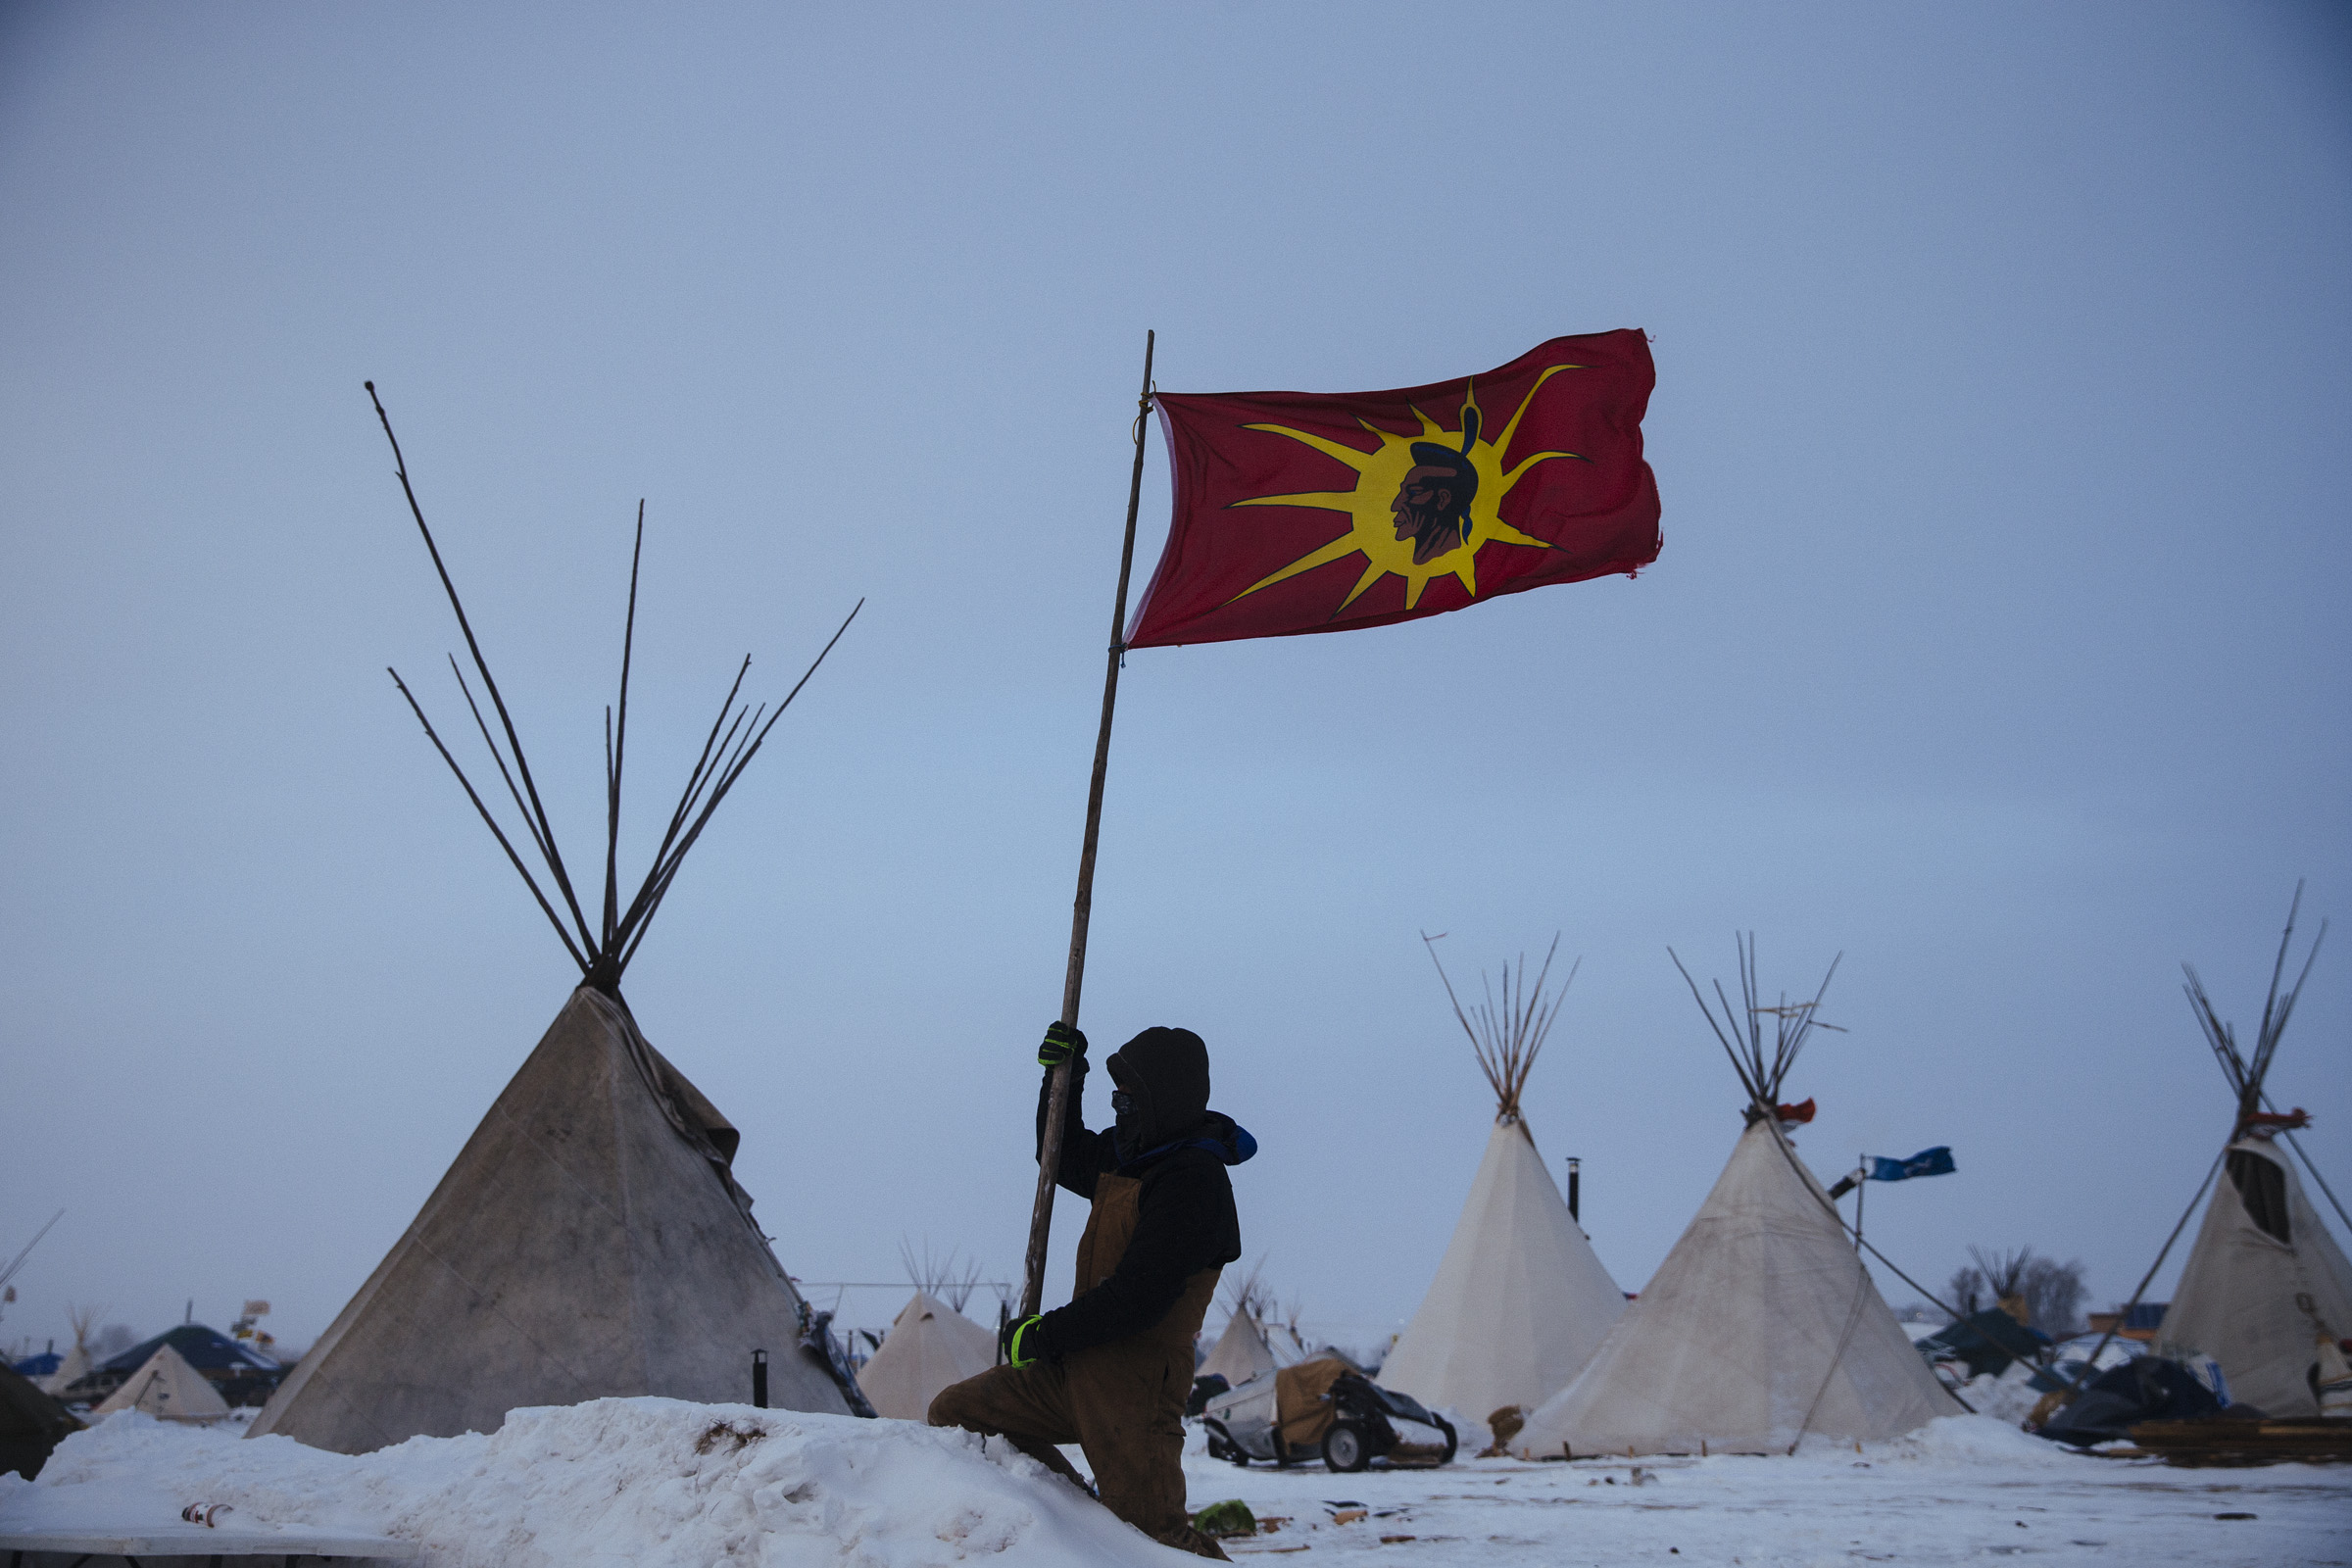 A protester removes a flag from his campsite before leaving the Oceti Sakowin Camp on Wednesday, Dec. 7, 2016. Thousands left the protest camp after blizzard conditions swept through it.(Photo by Angus Mordant/GroundTruth)